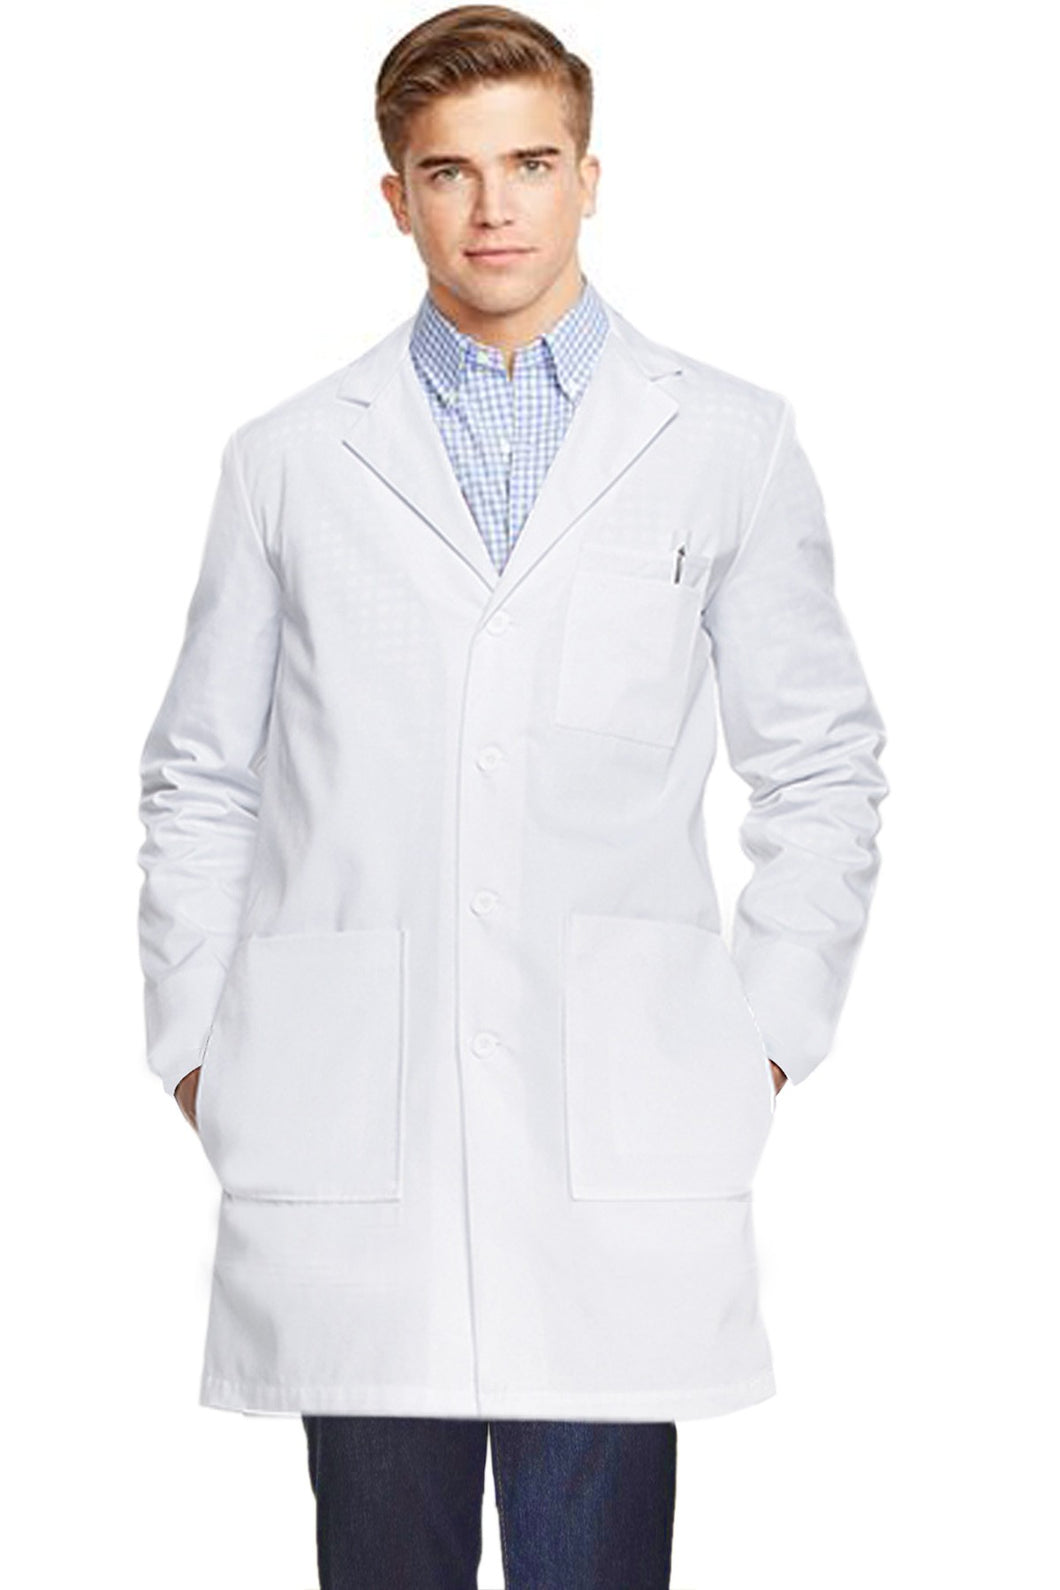 A+ Microfiber labcoat unisex full sleeve with plastic buttons 3 front pockets with side inside pockets - A Plus Medical Scrubs